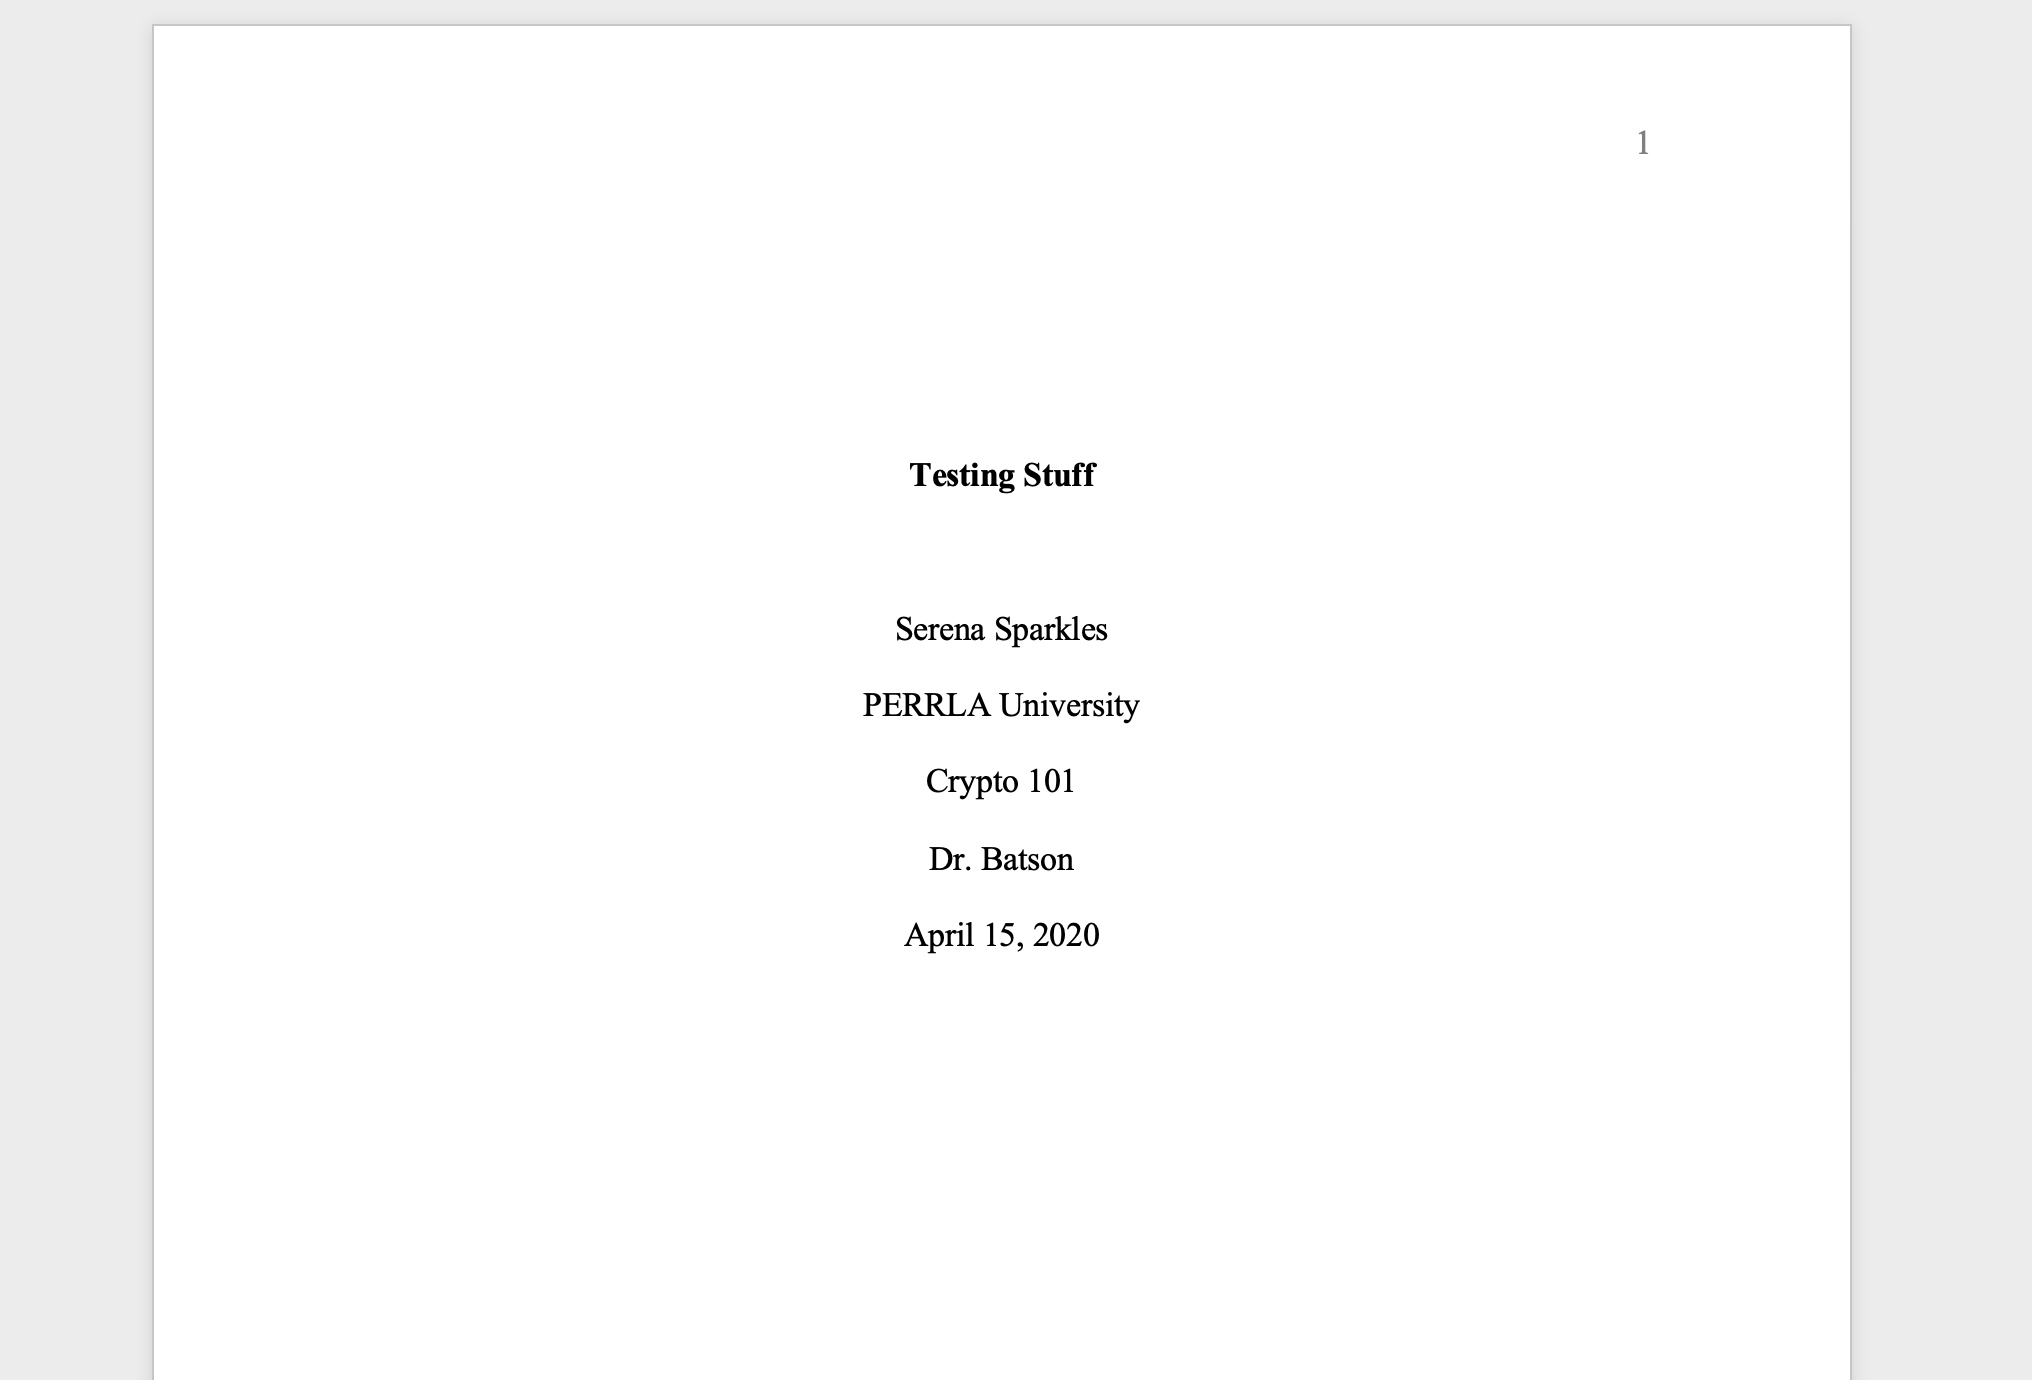 Apa 6th edition research paper cover page